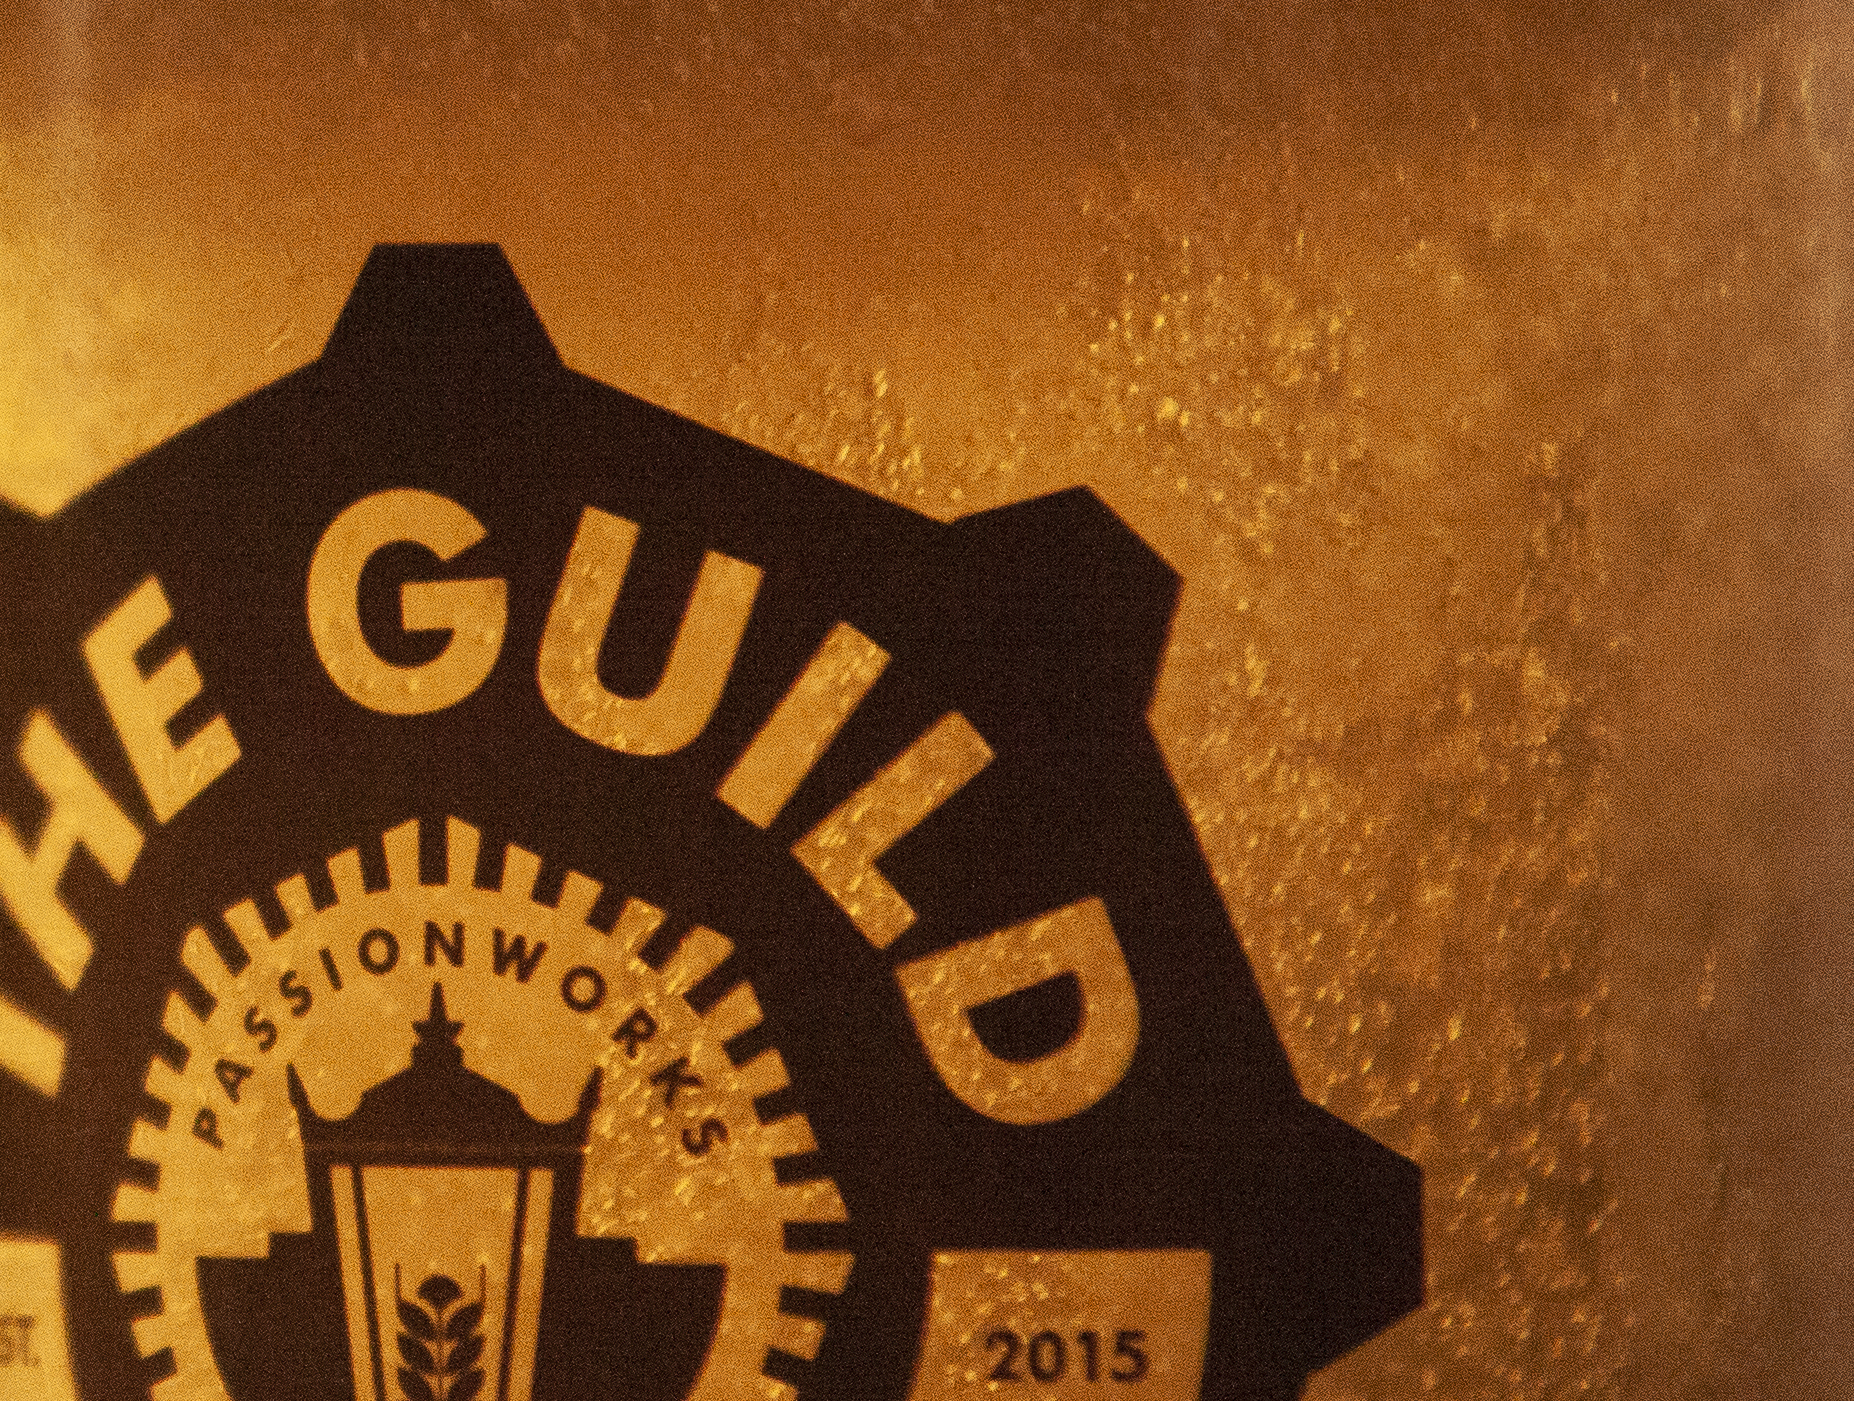 GUILD CU MUG WEBSITE